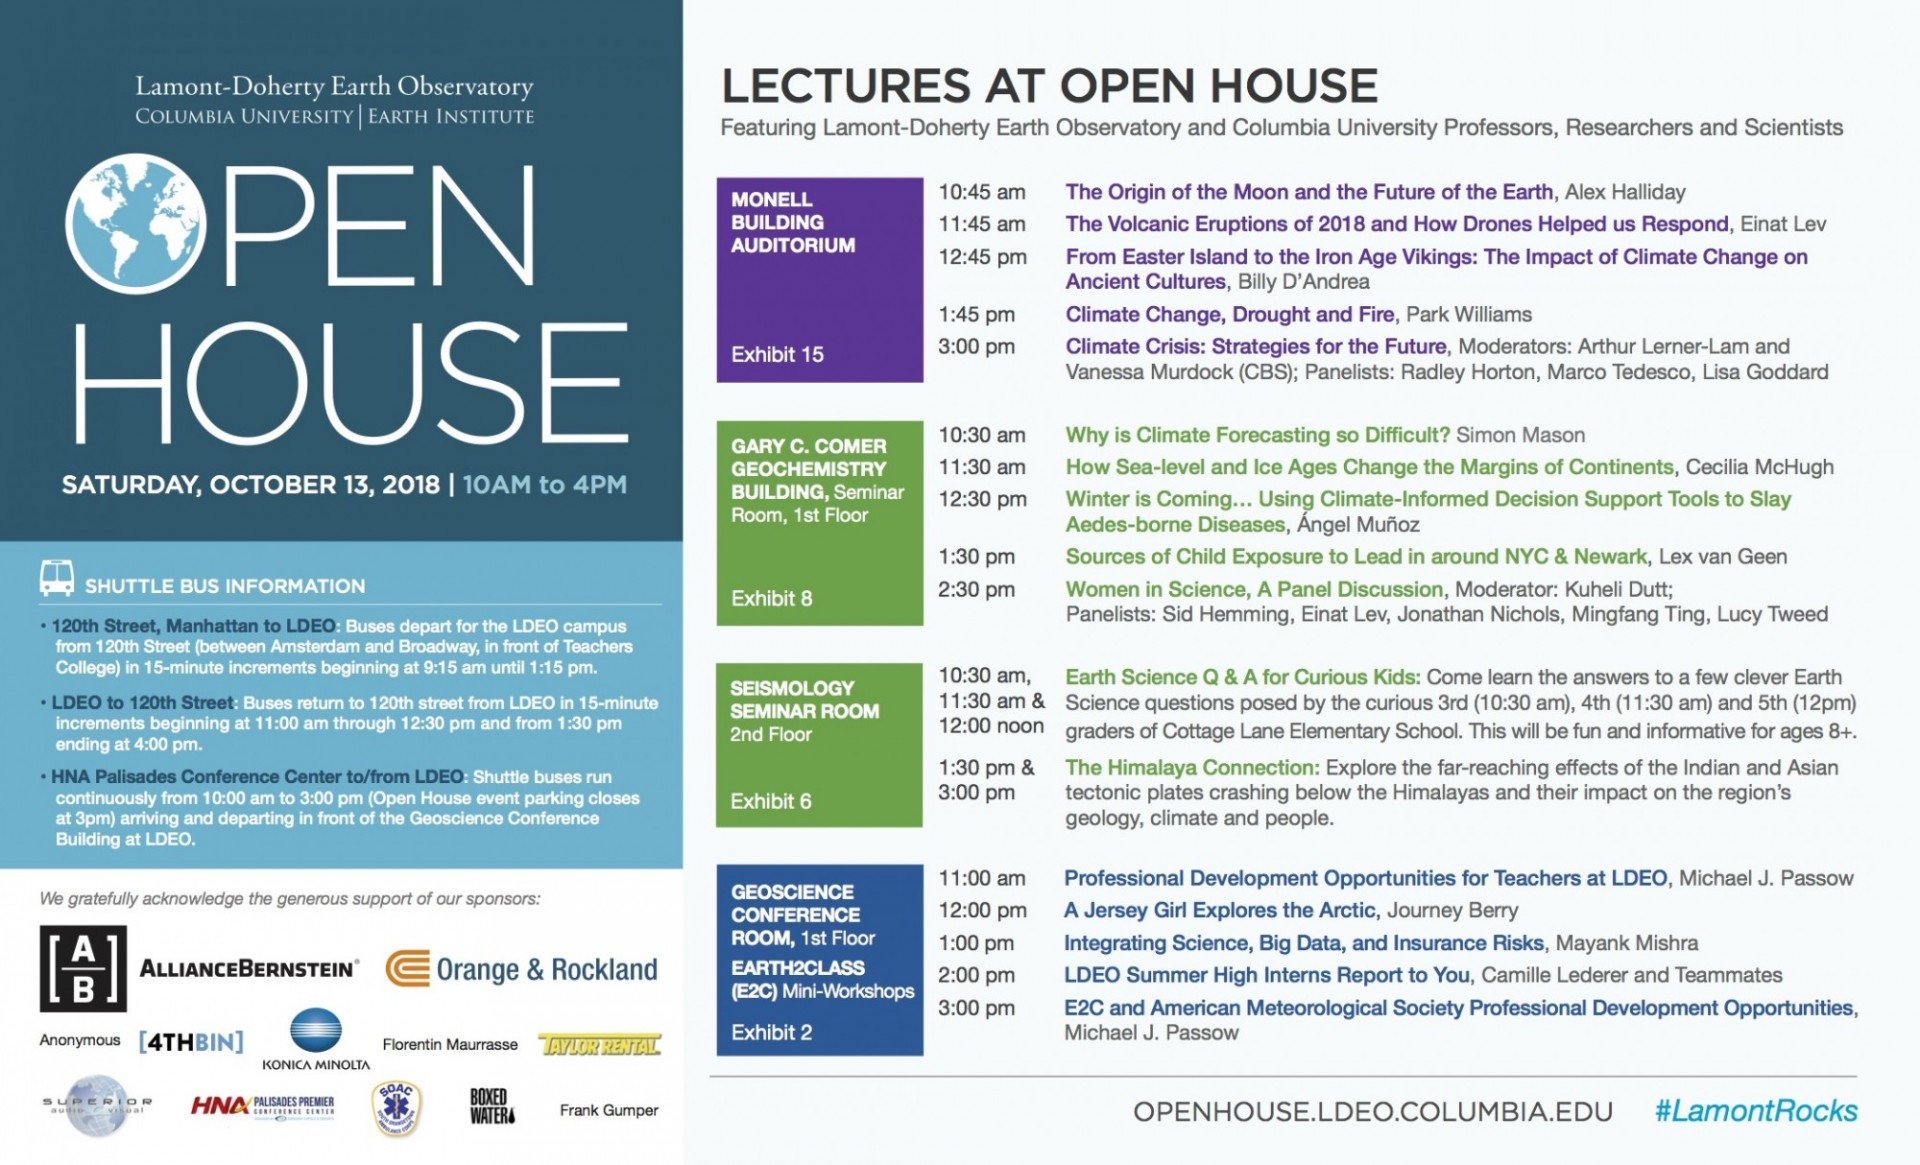 Open House visual lecture schedule 2018